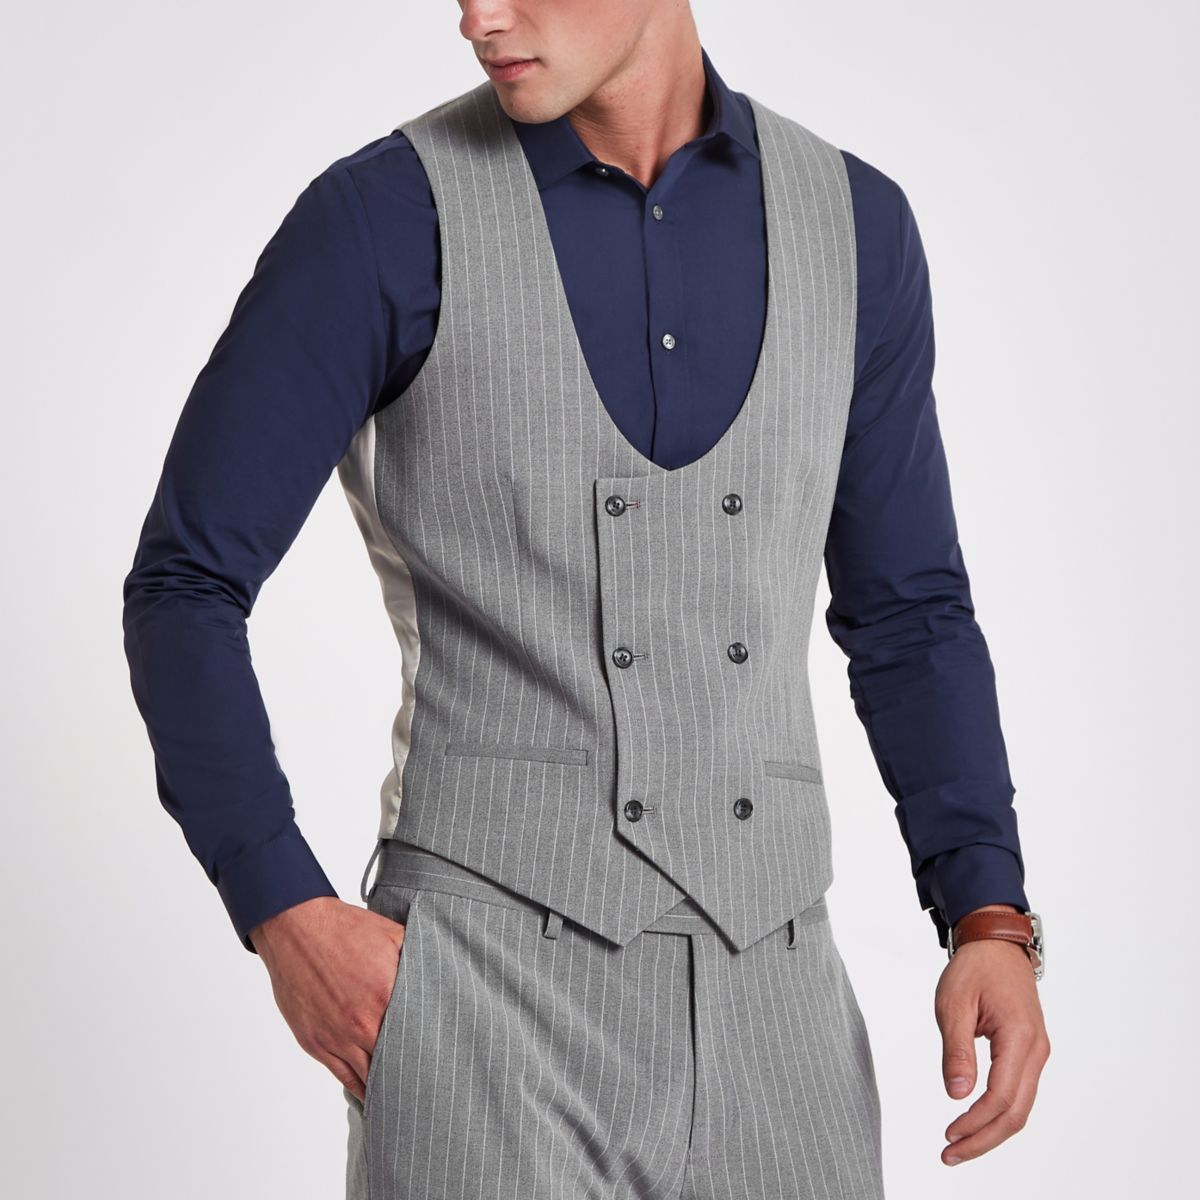 Grey stripe double breasted suit vest